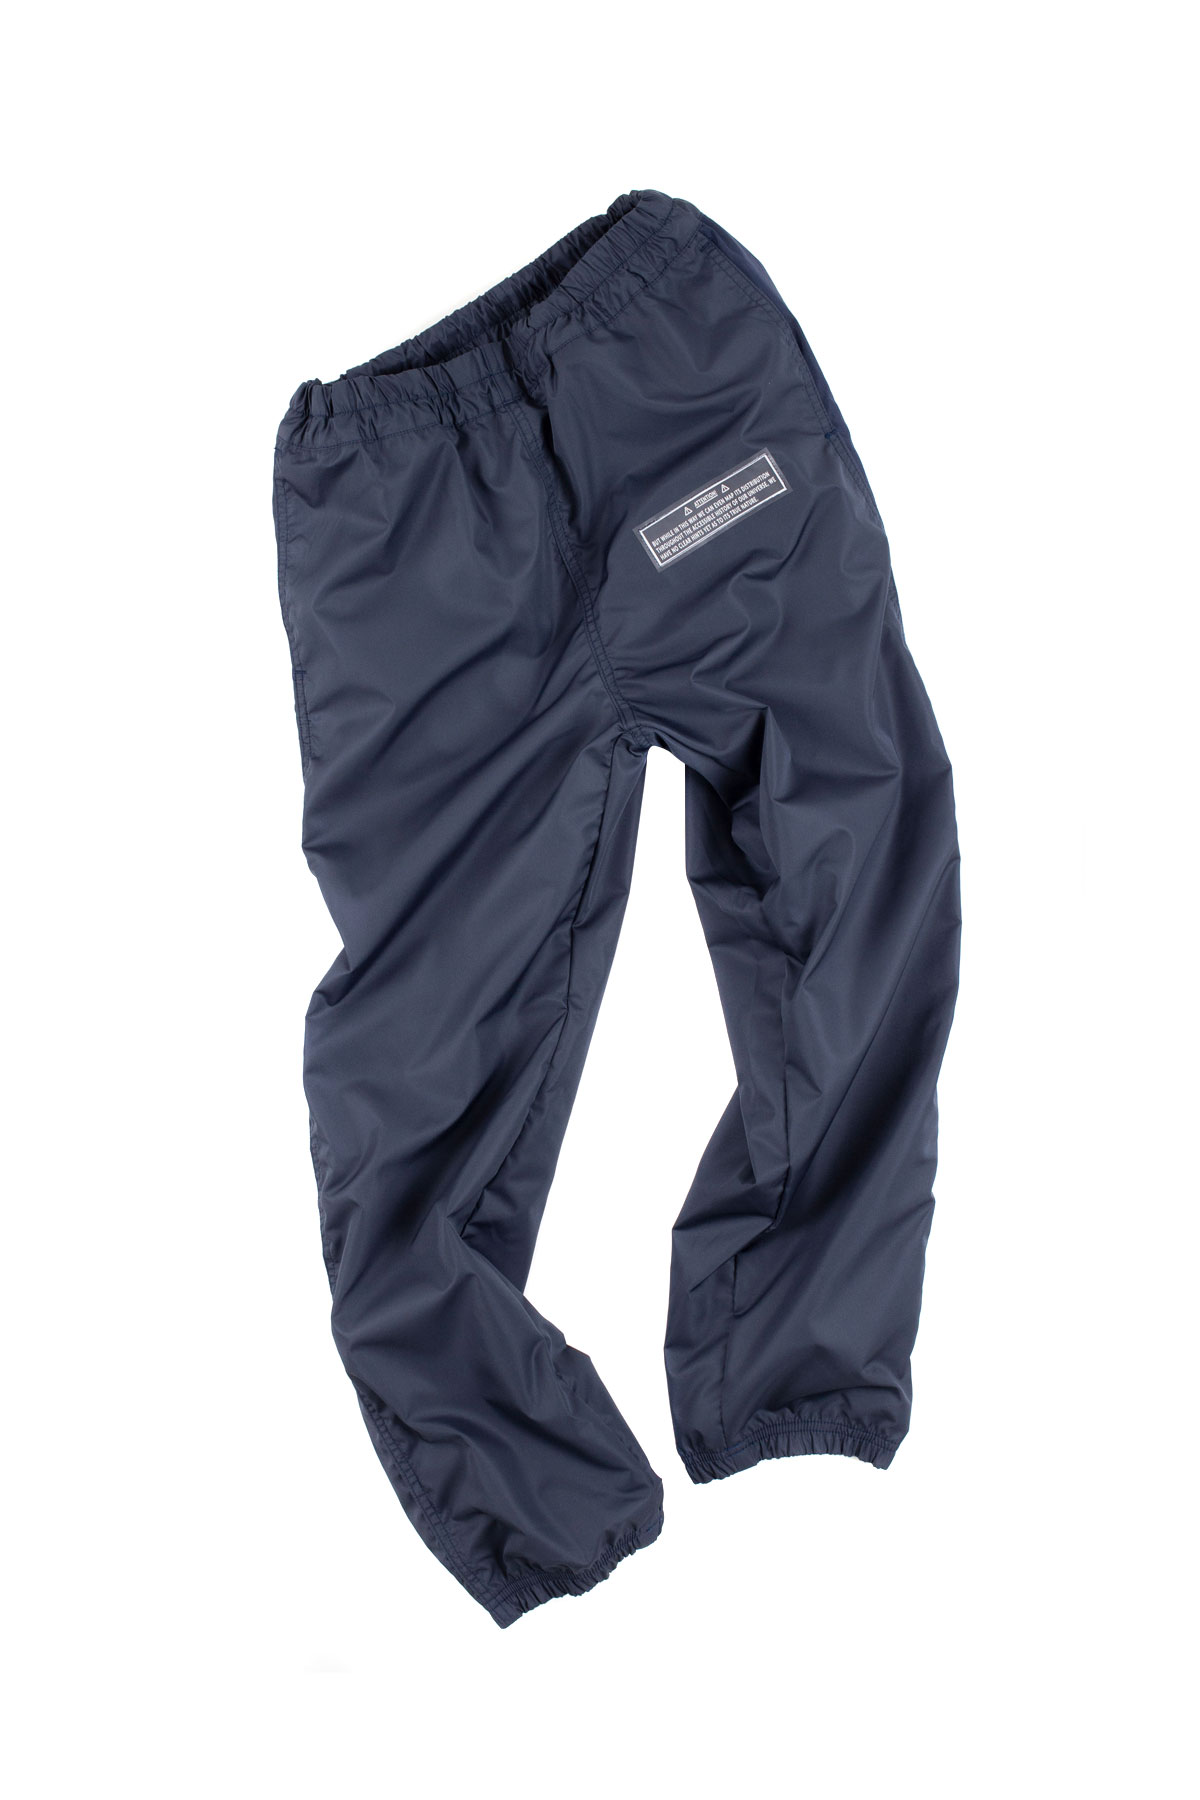 JieDa : Switching Nylon Pants (Navy)